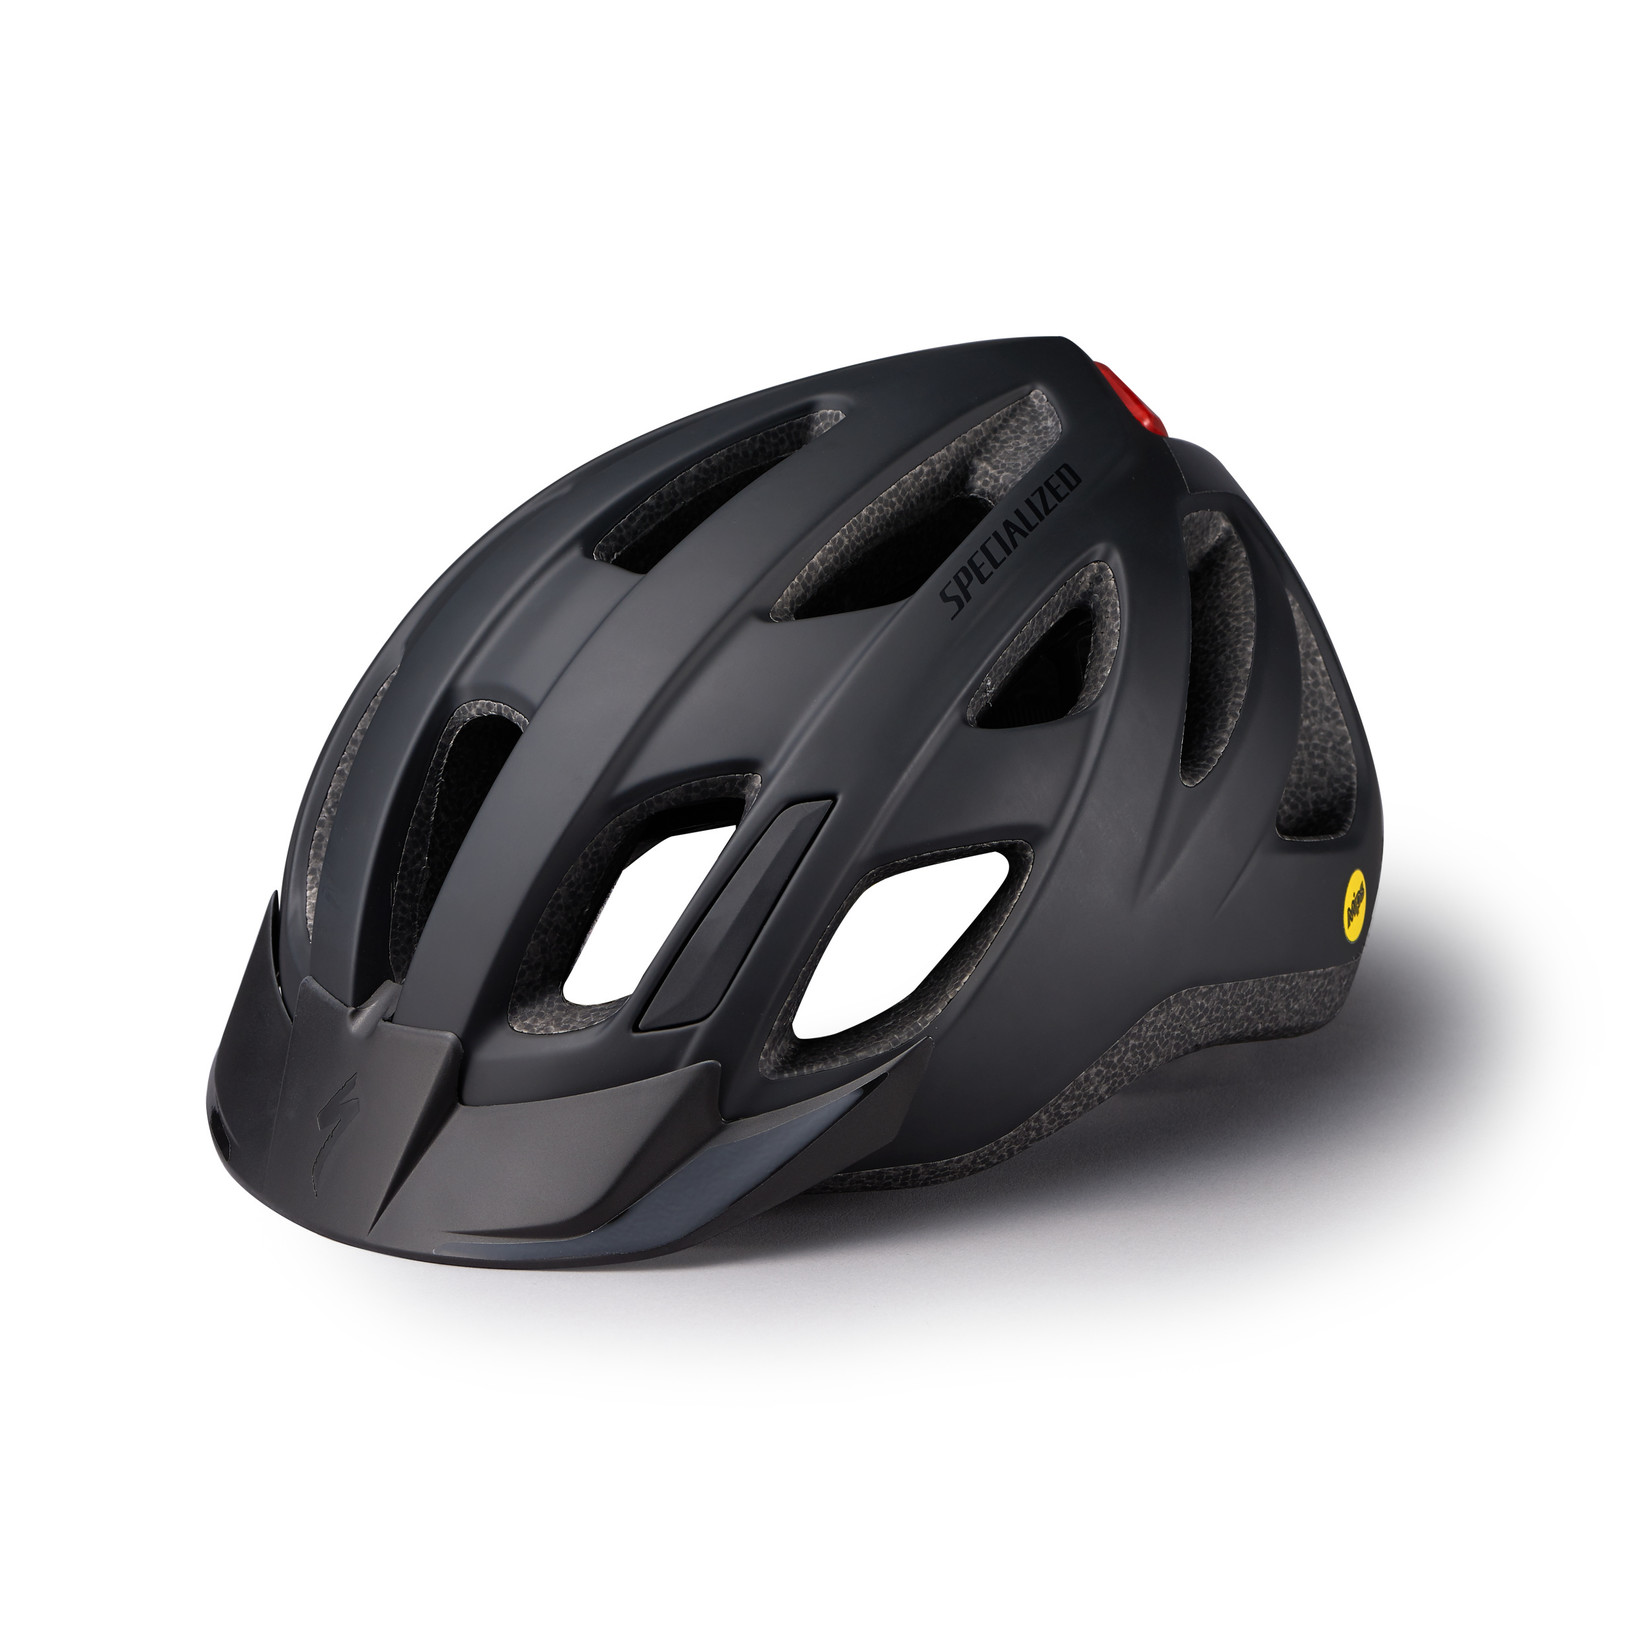 Specialized Centro MIPS LED